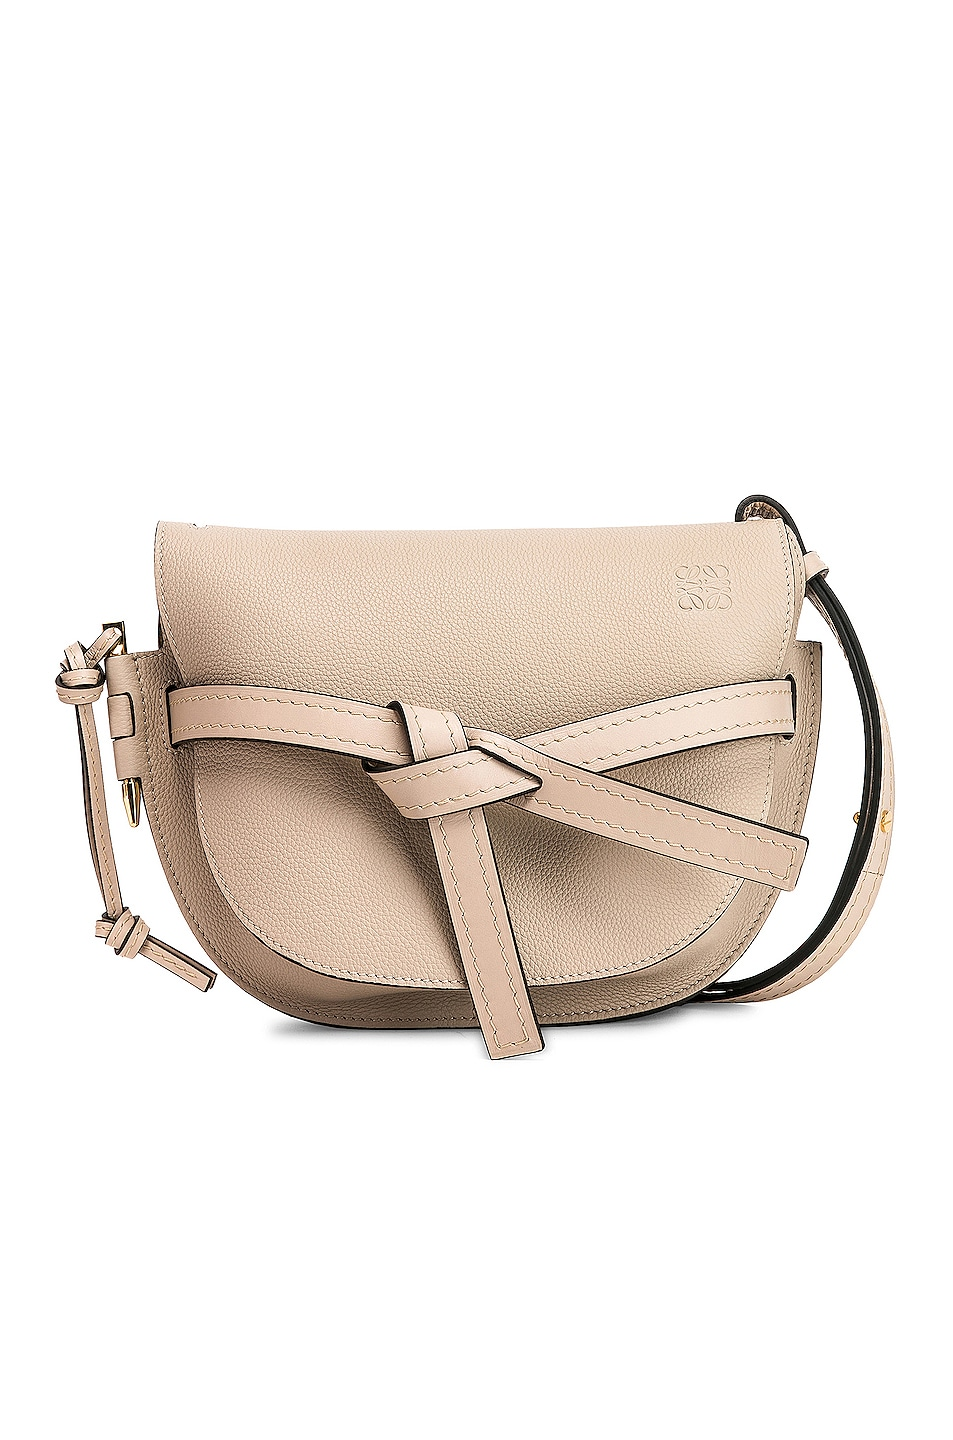 Image 1 of Loewe Gate Small Bag in Light Oak